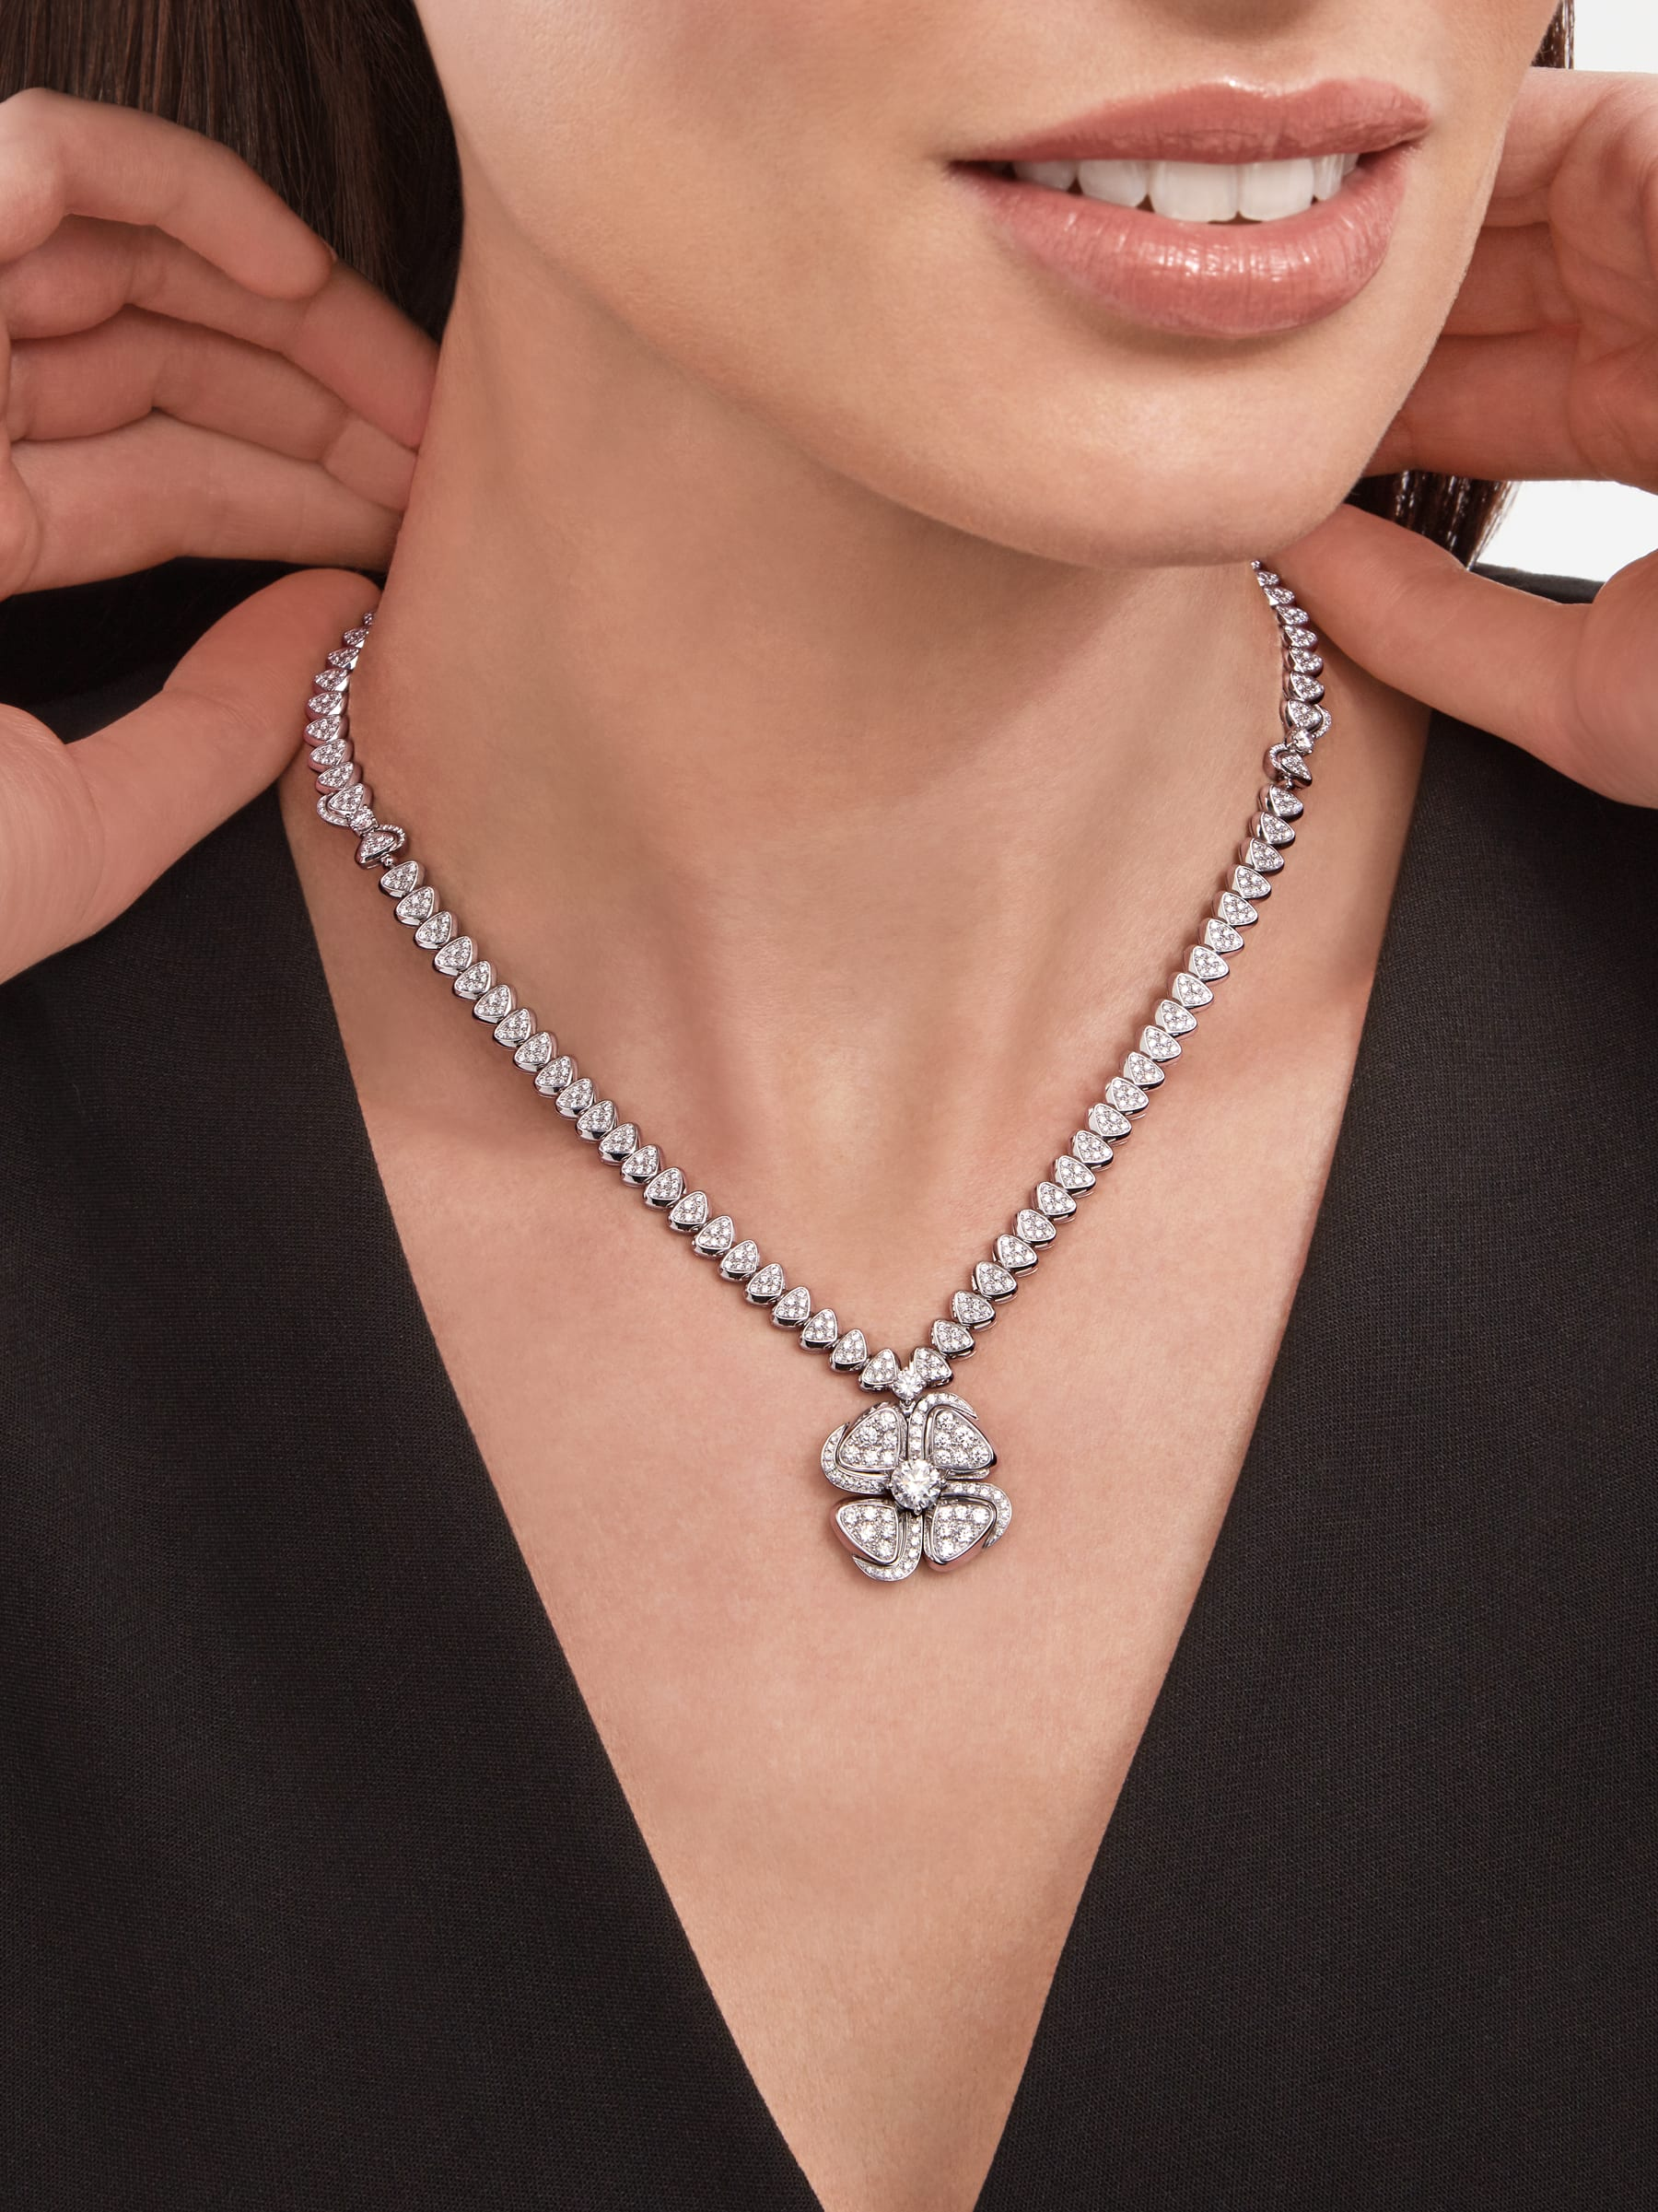 Fiorever 18 kt white gold necklace set with a central diamond (0.70 ct) and pavé diamonds 357377 image 4